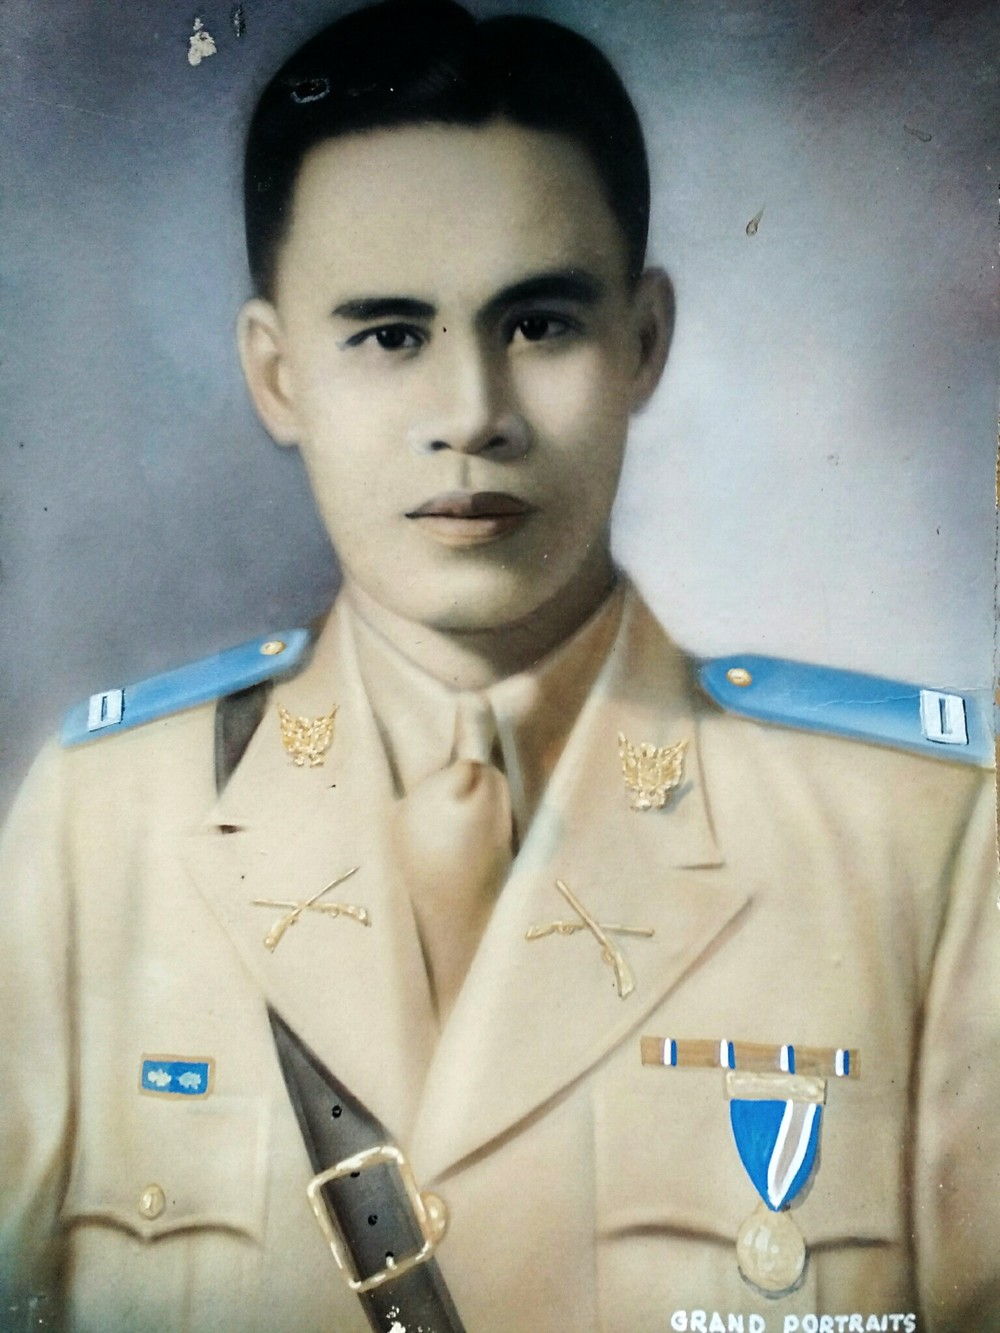 I am alive and FREE to do great things #CrossFitSV. Thank you veterans for defending our way of life. Grandpa Antonio Javier, you are remembered and honored! #VeteransDay #71stInfantryDivision#USARMY #Bataan